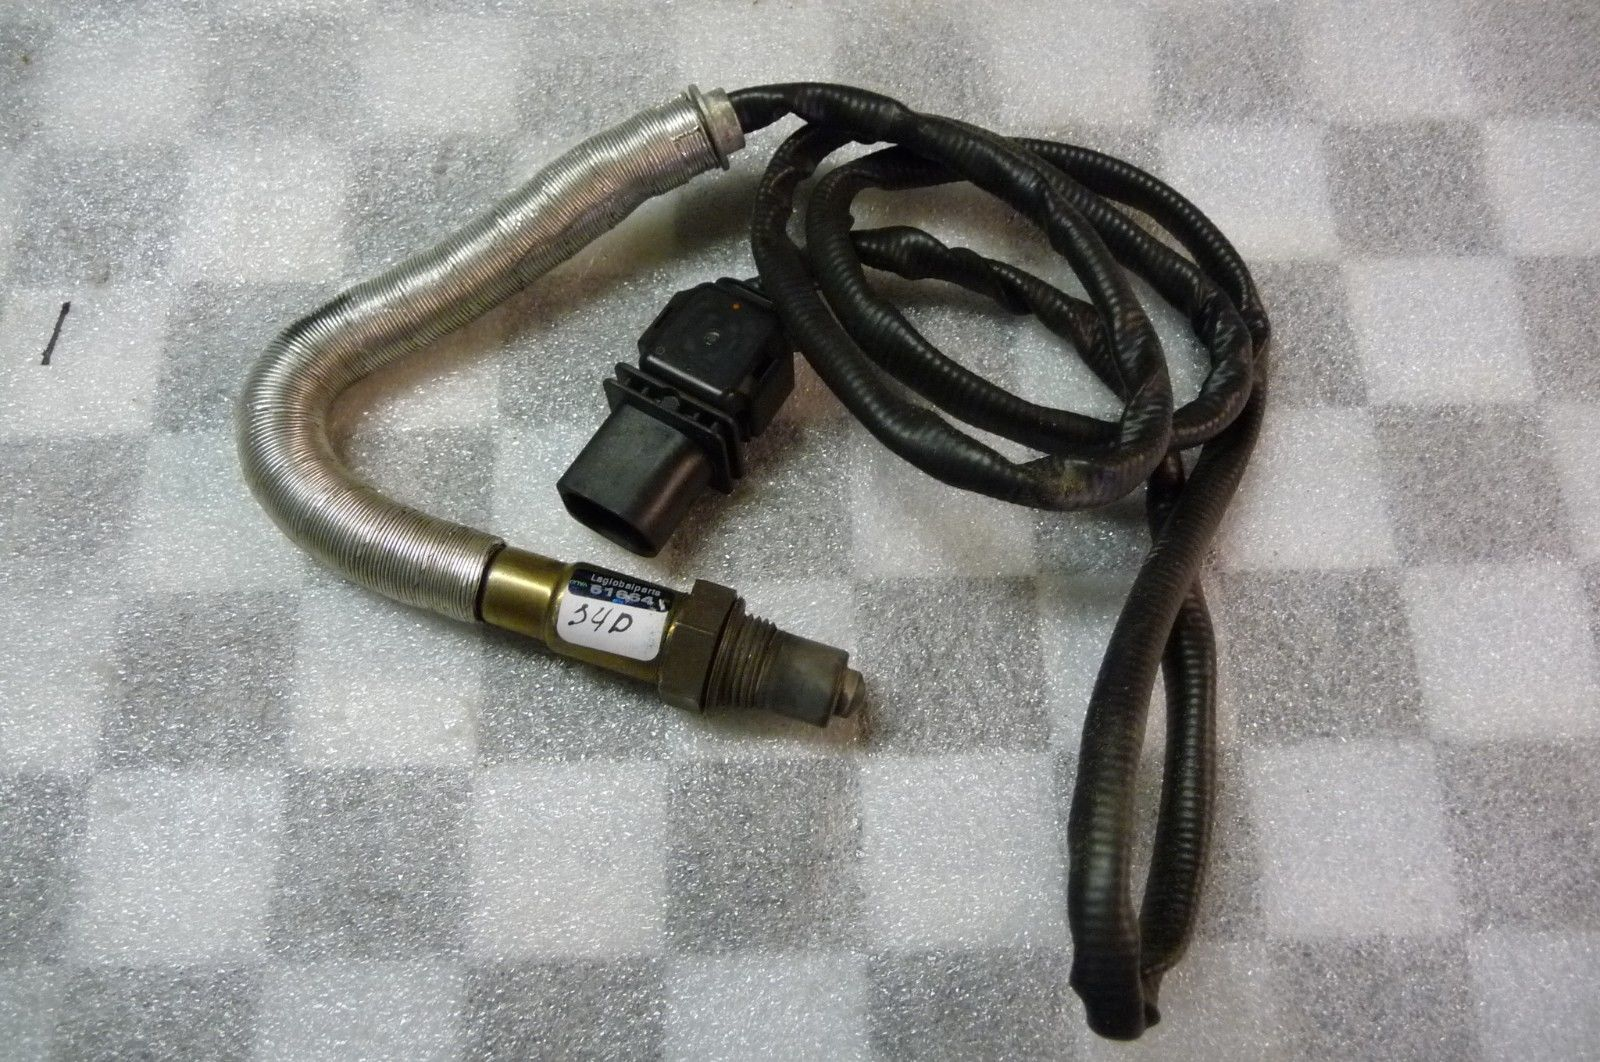 2008 2009 2010 BMW E60 E61 E71 535i X6 Exhaust System Regulating Lambda Probe Oxygen Sensor L=1300MM 11787570760 OEM